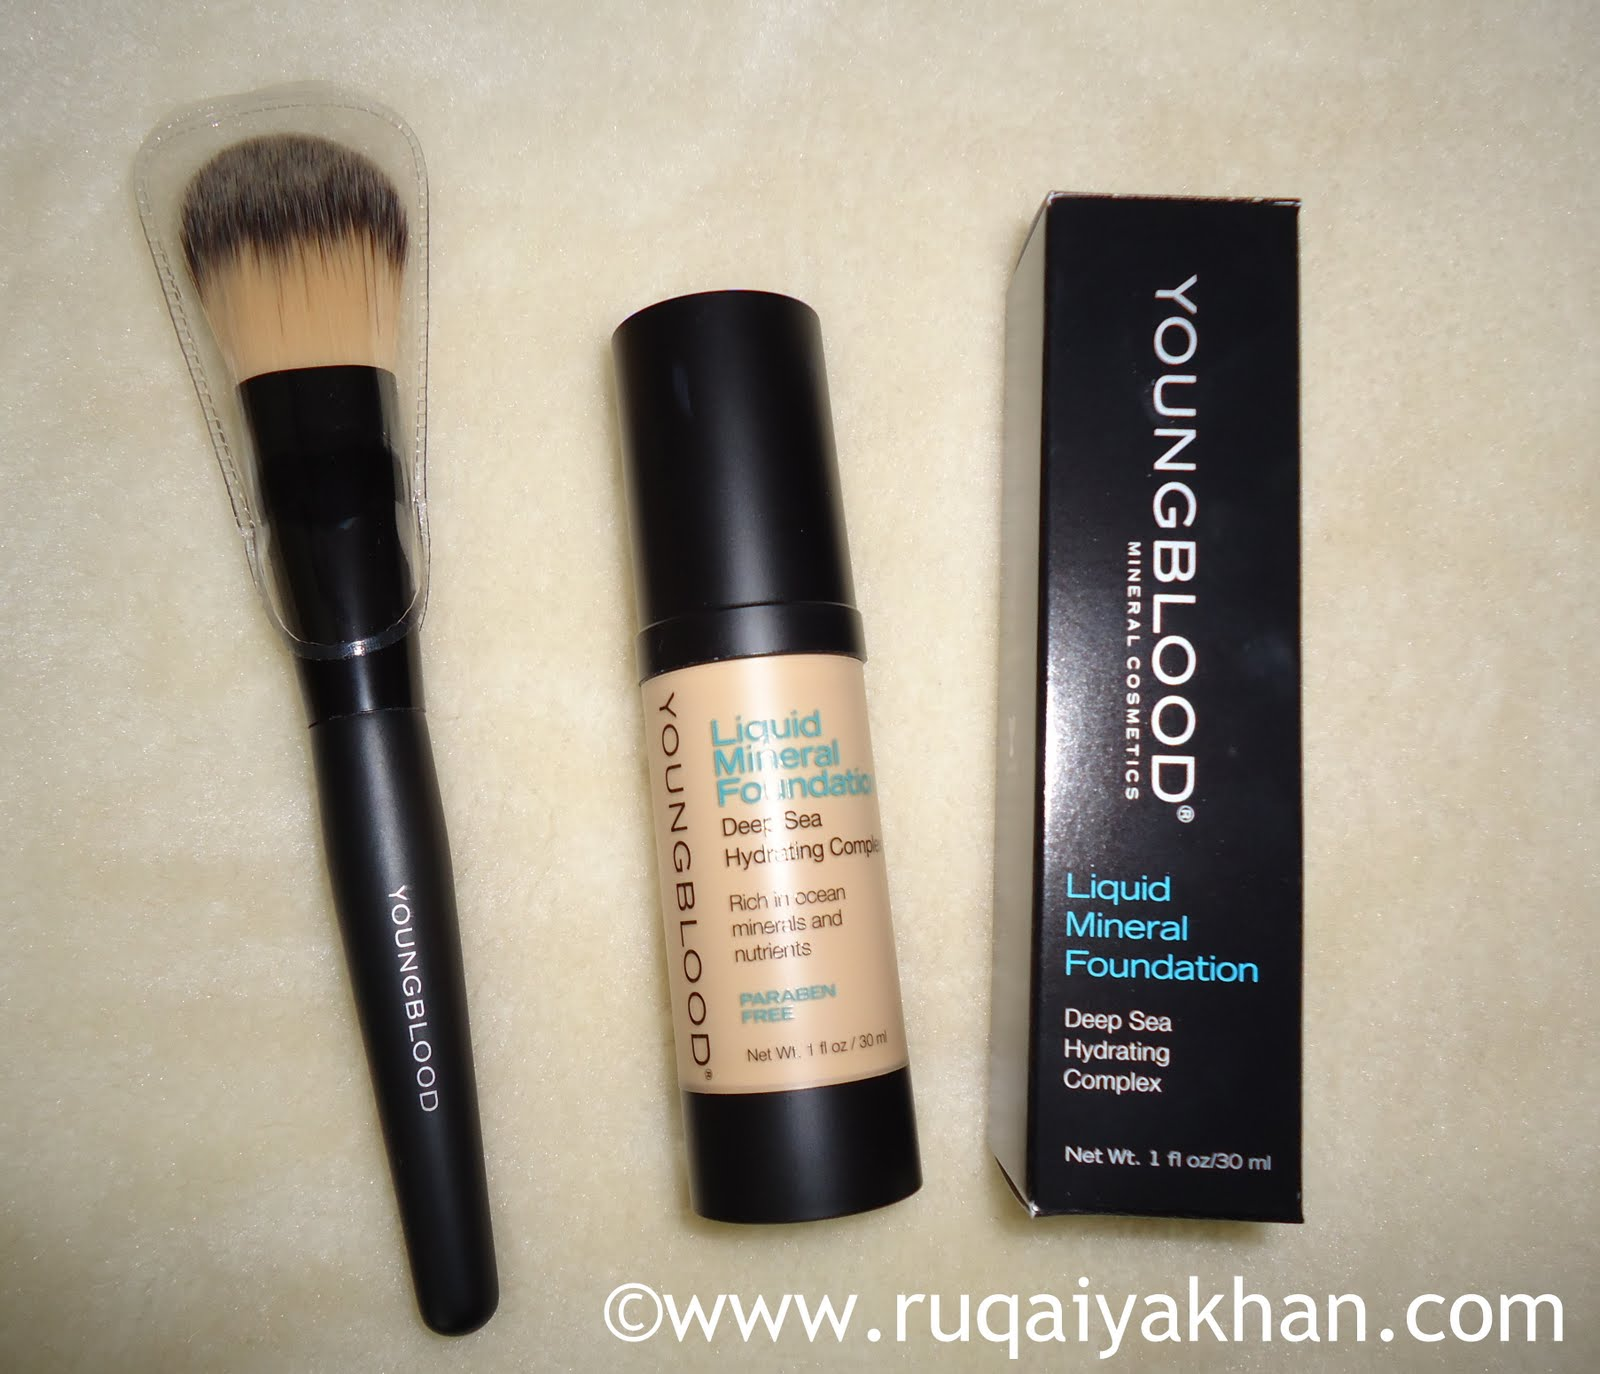 Sidste nye Ruqaiya Khan: Young Blood Liquid Mineral Foundation in Shell and SG-92